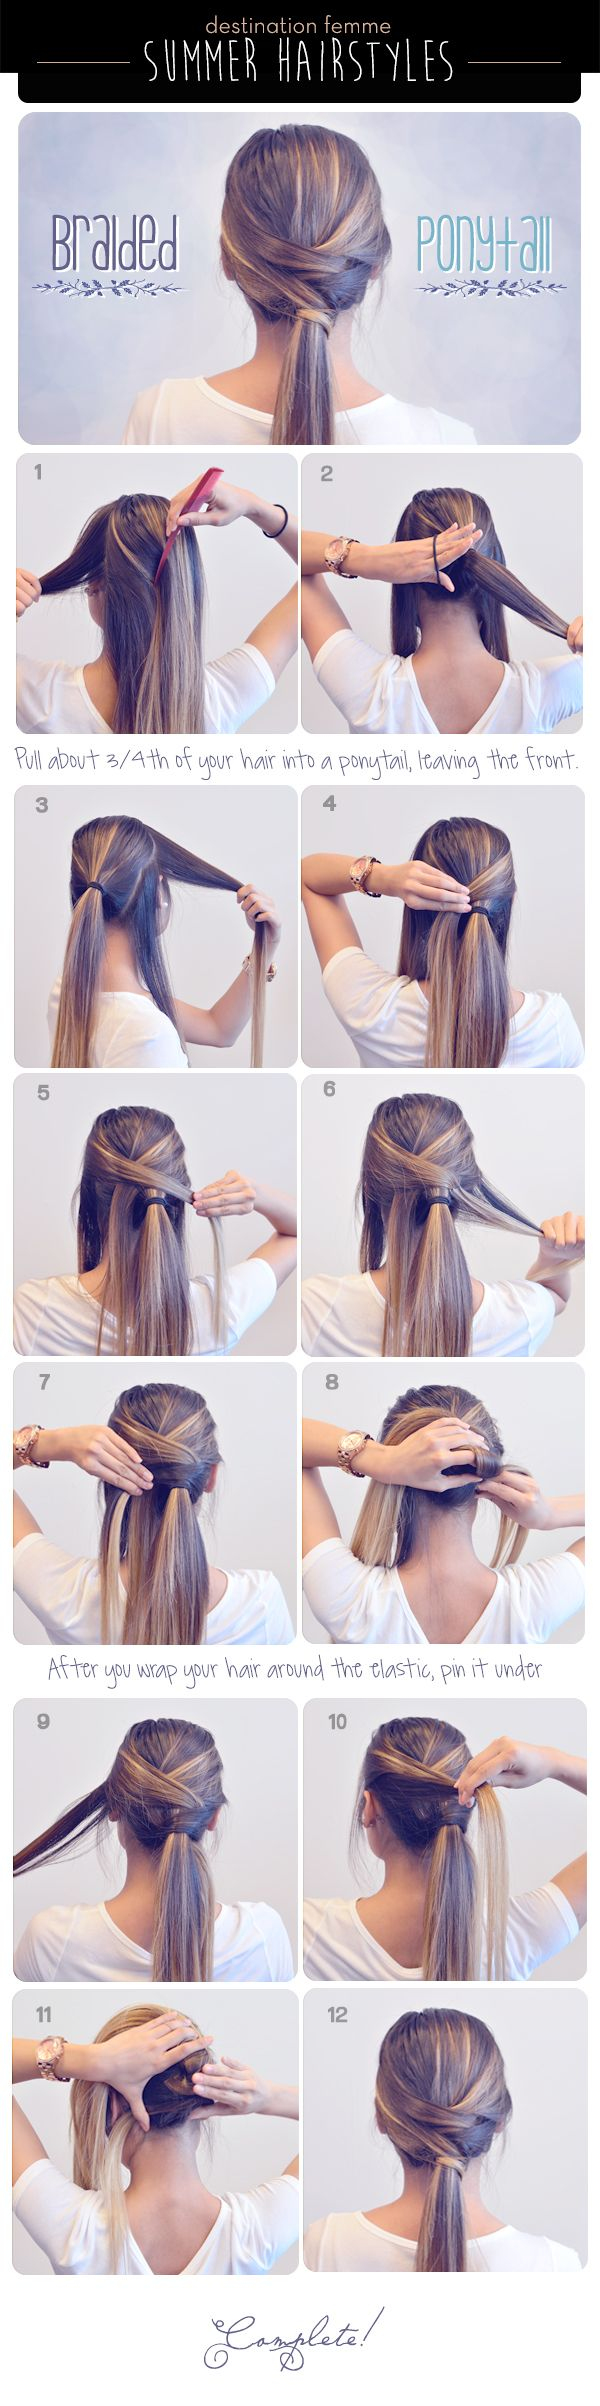 3 Cute & Easy Braided Hairdos for Summer - Destination Femme